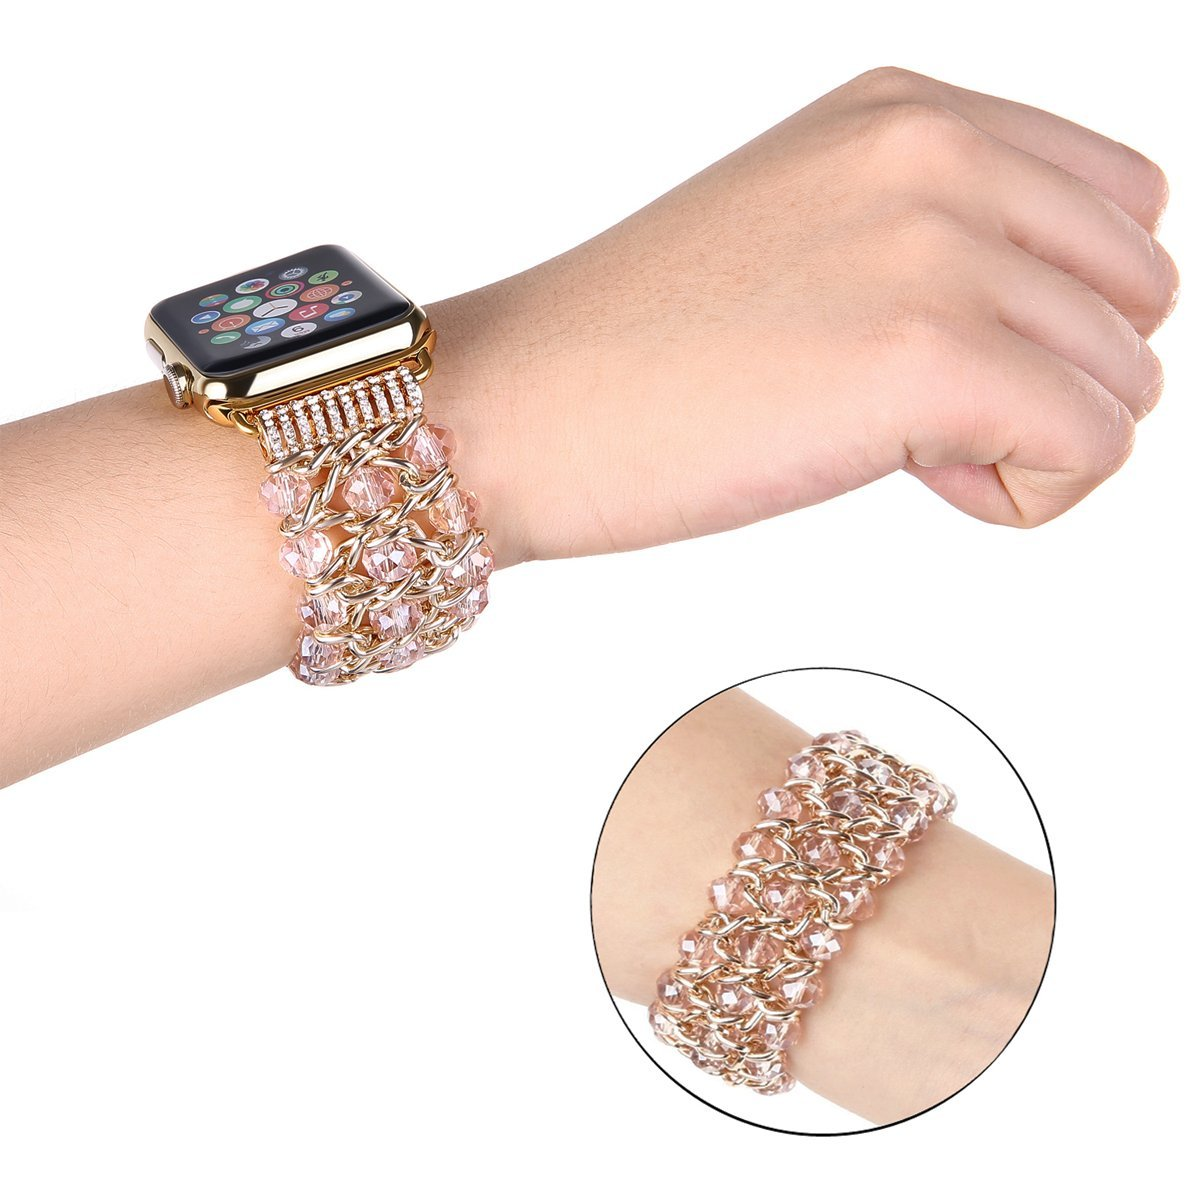 Censha Compatible with Apple Watch Band 42mm 38mm, Women Fashion Handmade Elastic Stretch Crystal Beaded Bracelet Metal Chain Replacement Strap for iWatch Series 3/2/1 (Pink 38mm)